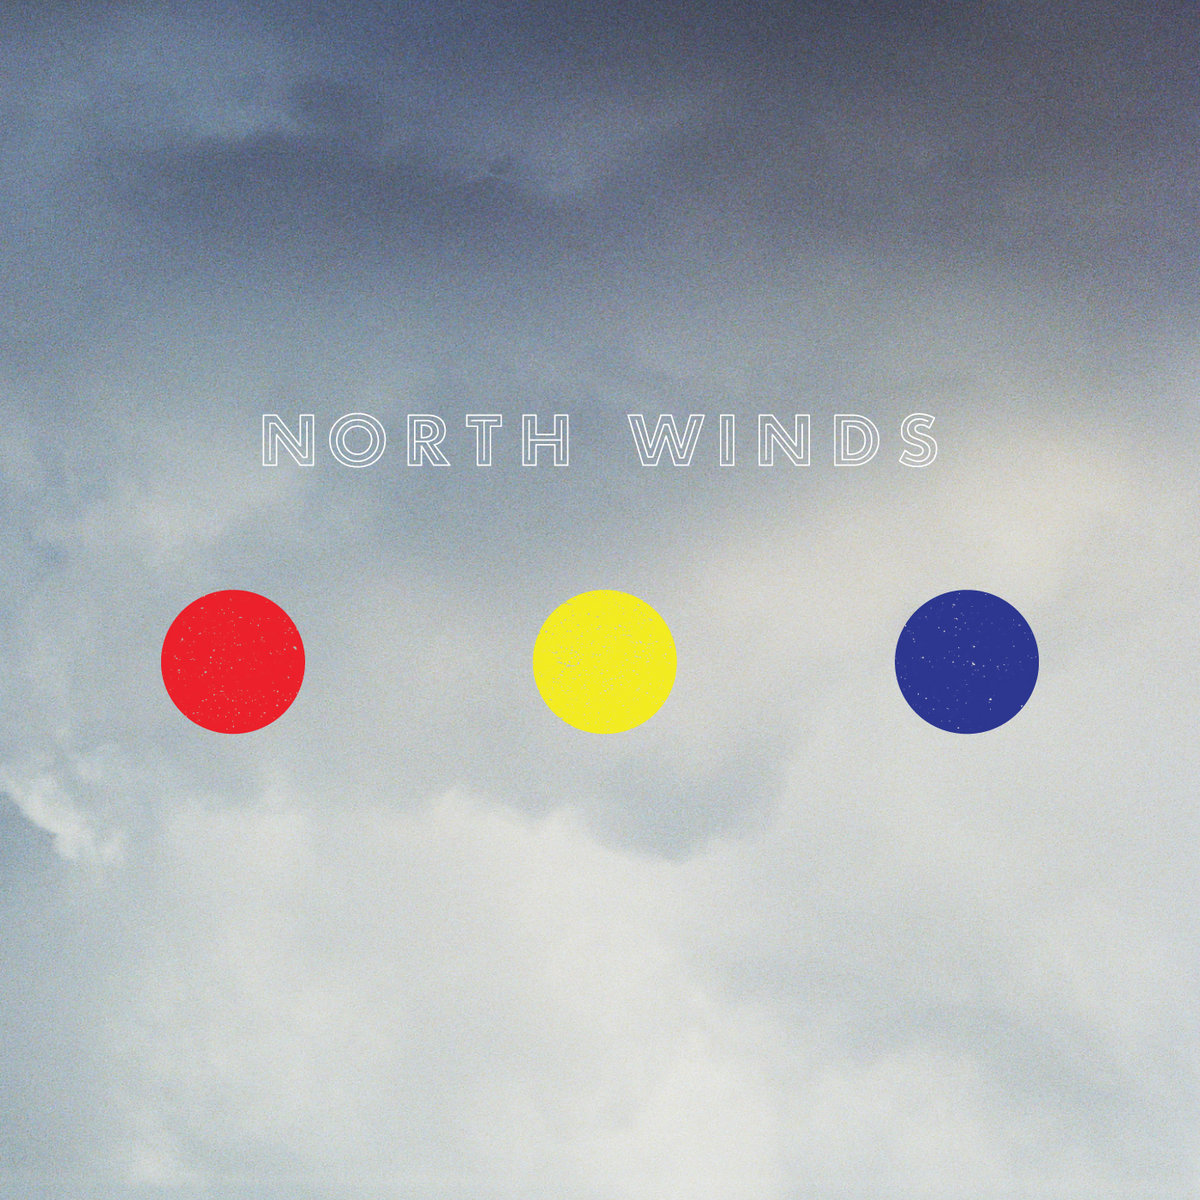 [Sunday Listening] North Winds – Jacob Montague